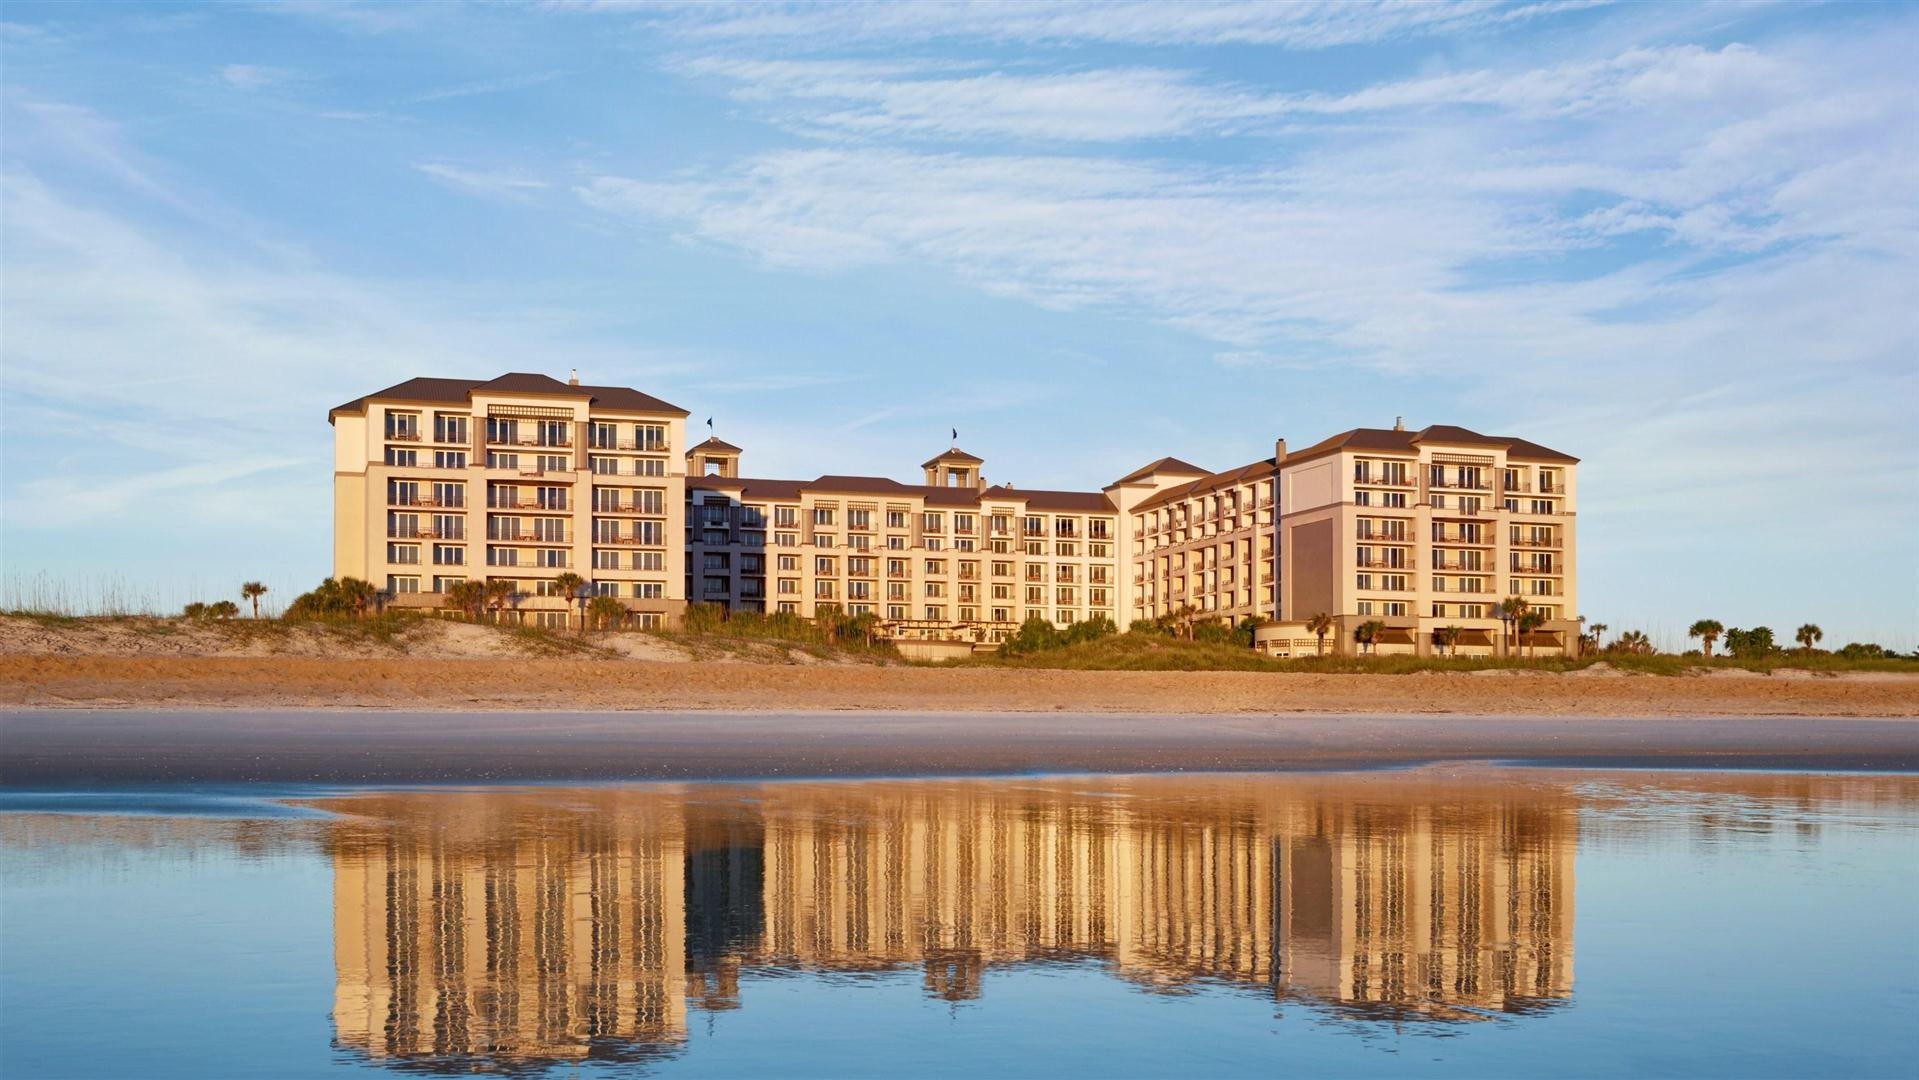 fda57be3316 Meetings and events at The Ritz-Carlton, Amelia Island, Amelia ...